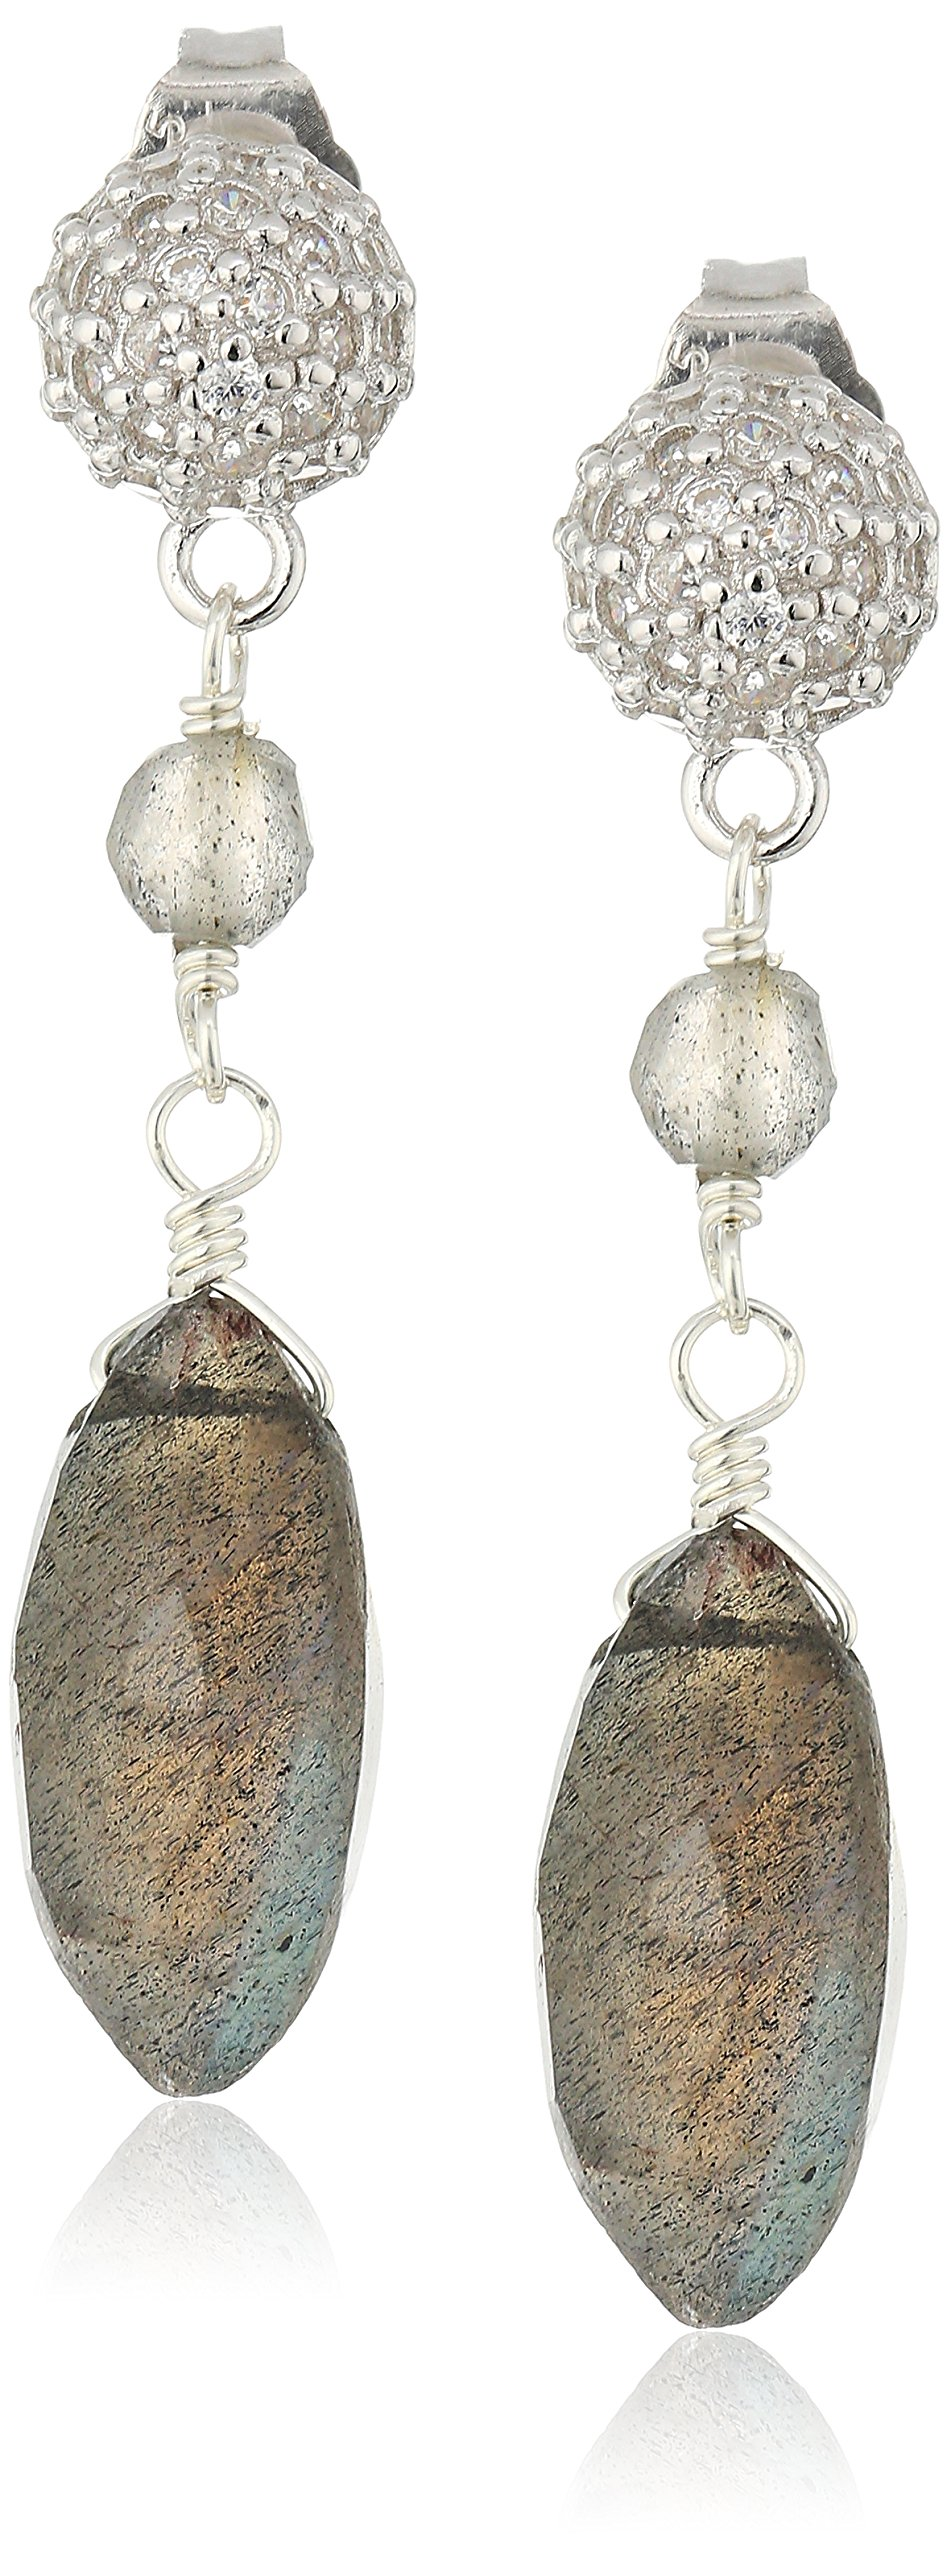 Pave Cubic Zirconia Ball Tops with Labradorite Marquise Shaped Sterling Silver Drop Earrings